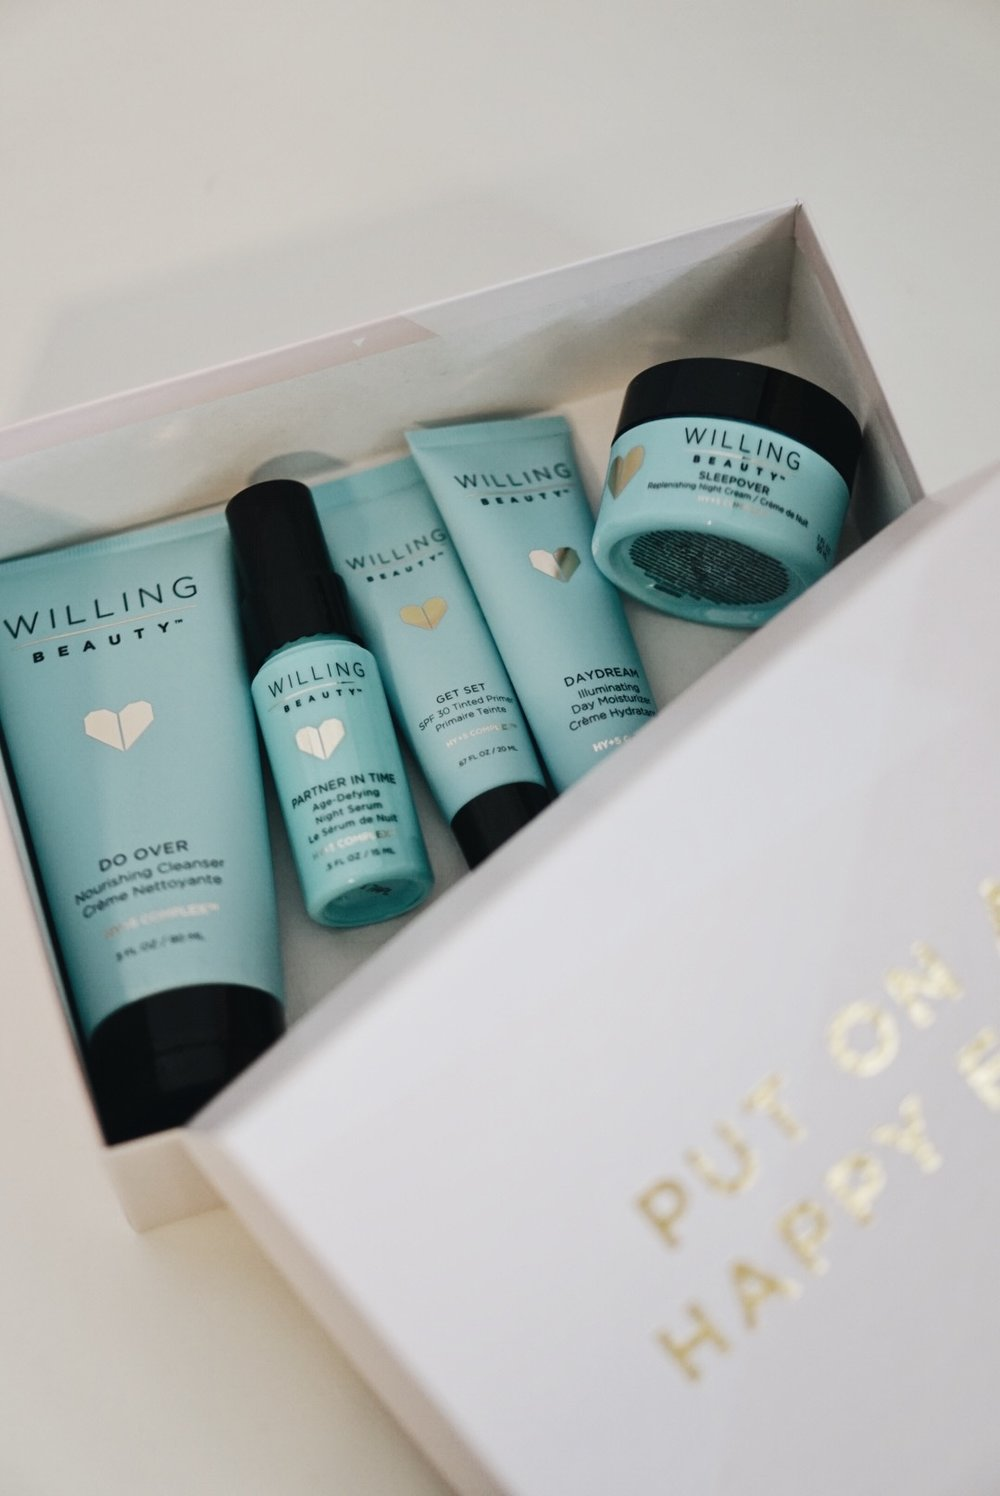 Willing Beauty Skincare - Review